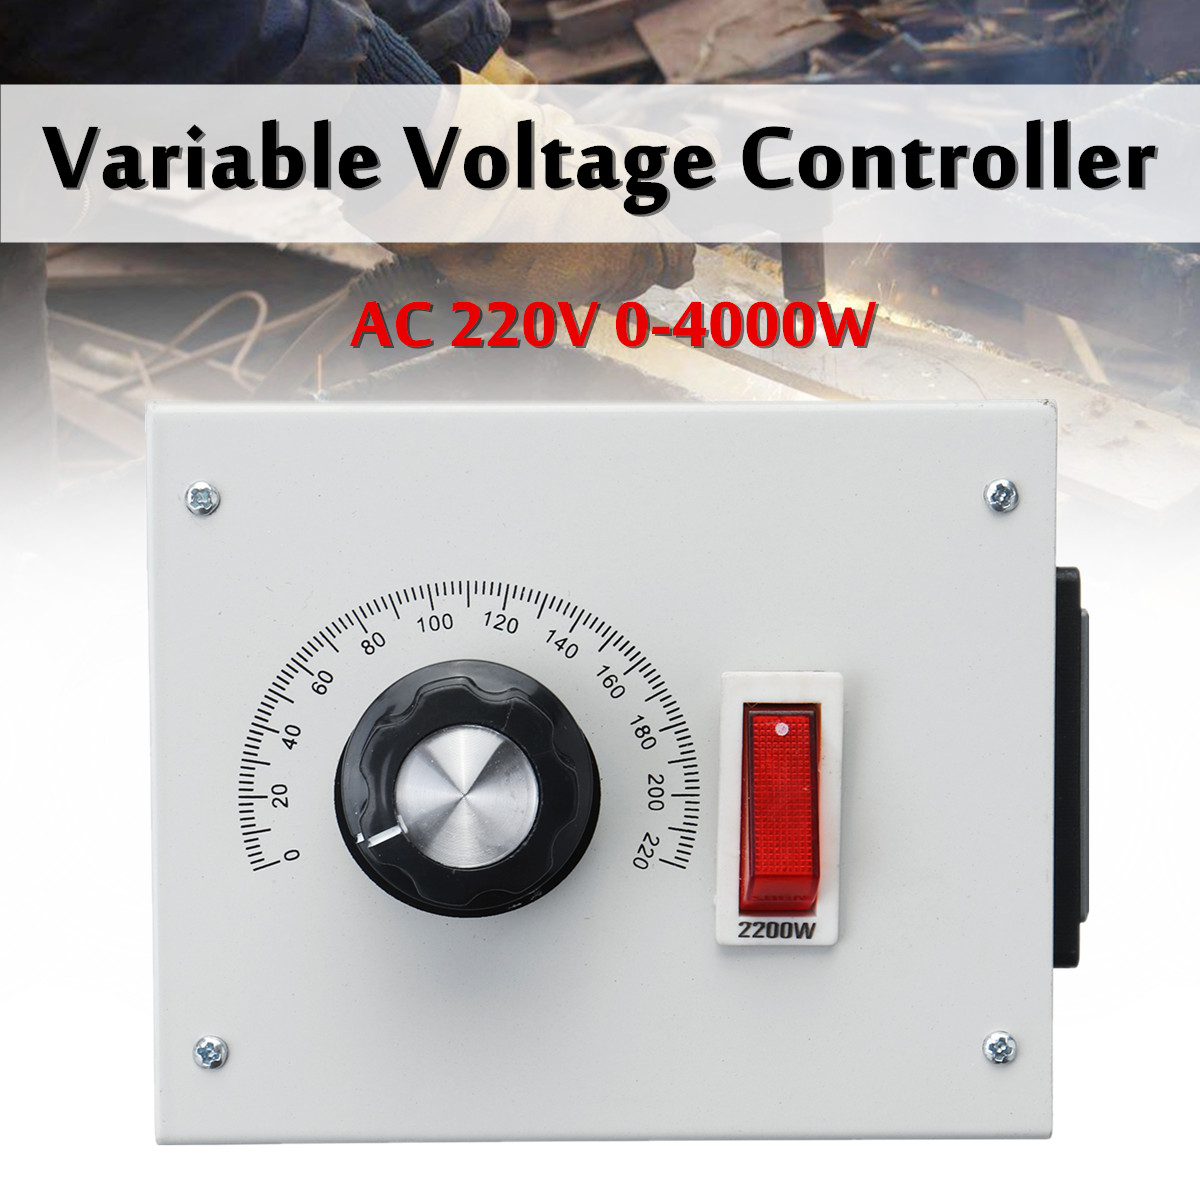 4000W AC 220V Variable Voltage Dimmer Controller Control For Fan Speed Motor Dimmer